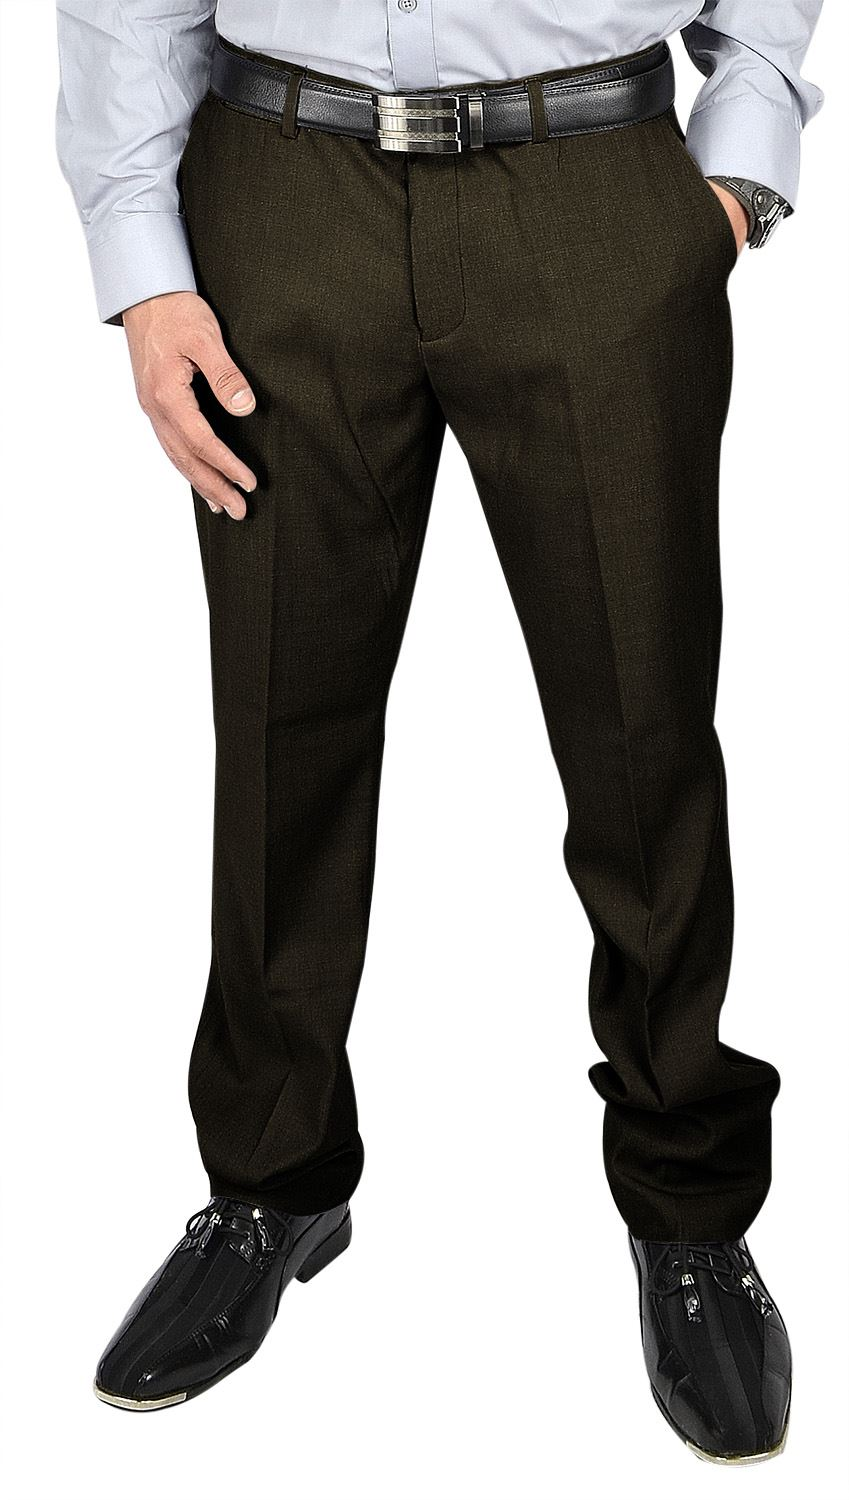 Moda Di Raza- Men's Pants Fashion Formal Business Wedding Dress Pants - Brown-Size: 30x30